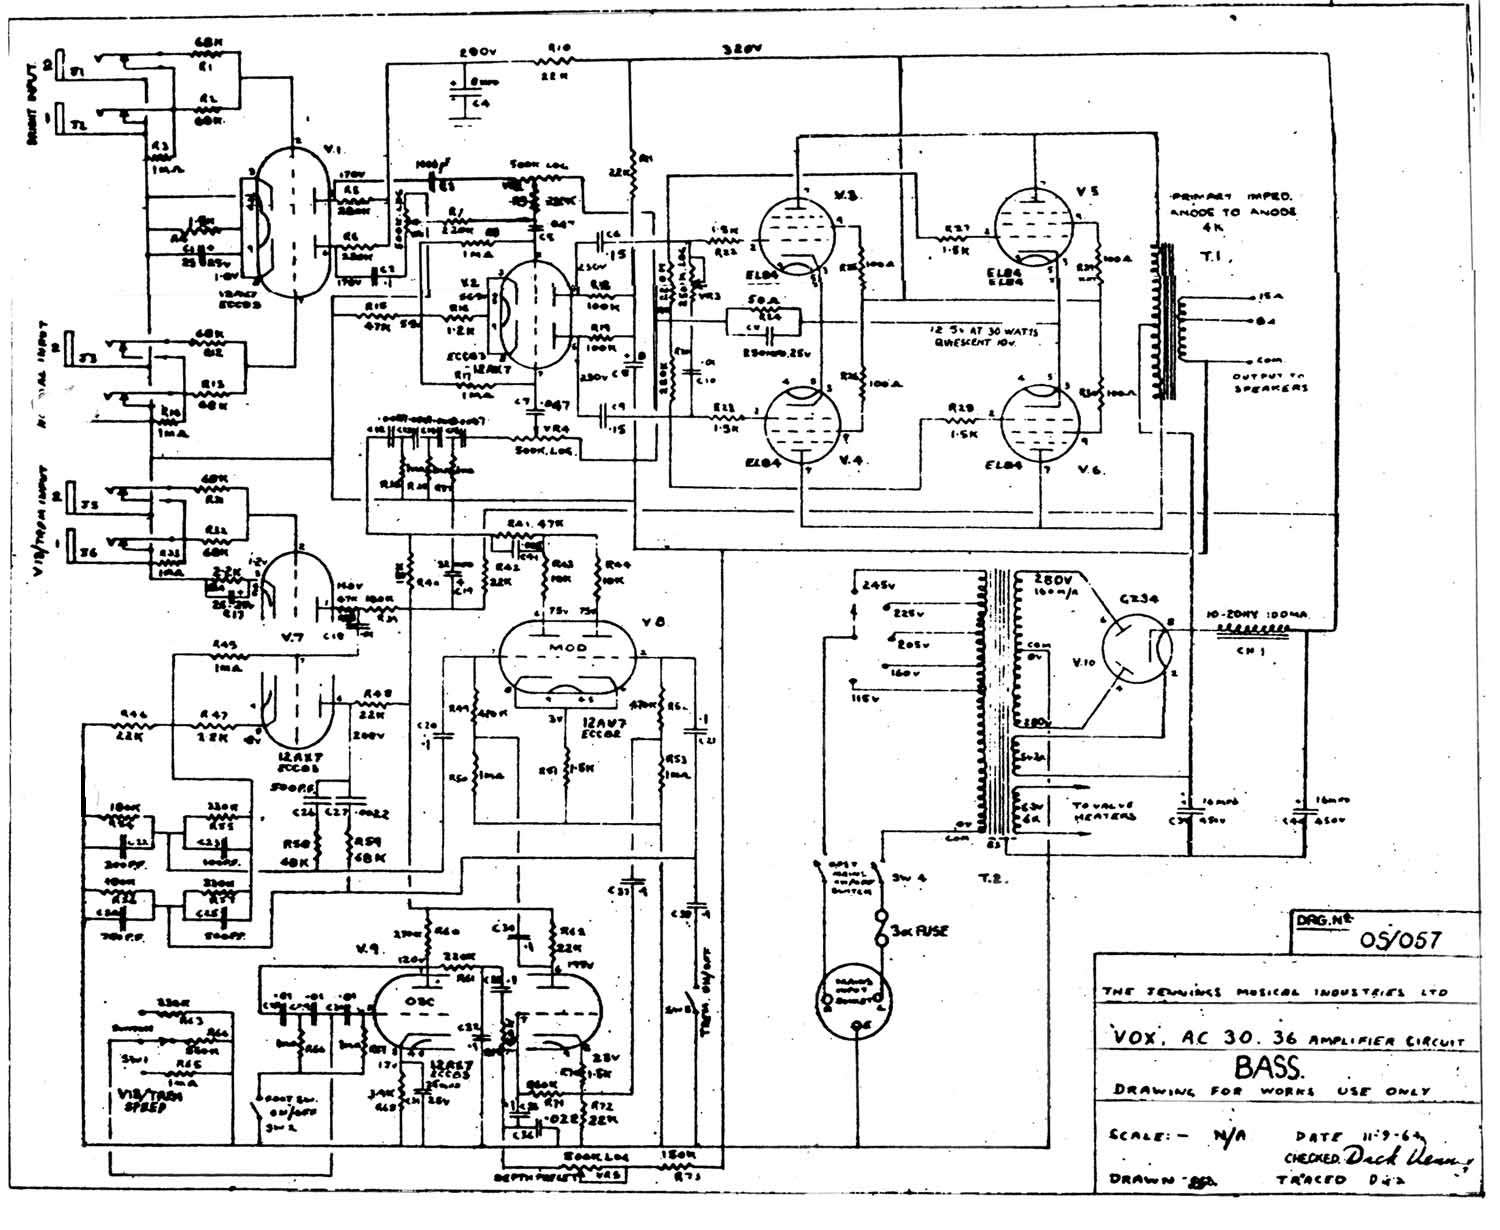 Vintage Schematics on motor schematics, radio schematics, speaker schematics, generator schematics, wire schematics, ic circuit schematics, modem schematics, led schematics, orange amp schematics, robot schematics, guitar schematics, valve schematics, ulf receiver schematics, audio circuit schematics, electronic circuit schematics, astable multivibrator schematics, computer schematics, heathkit schematics, transformer schematics, tube schematics,